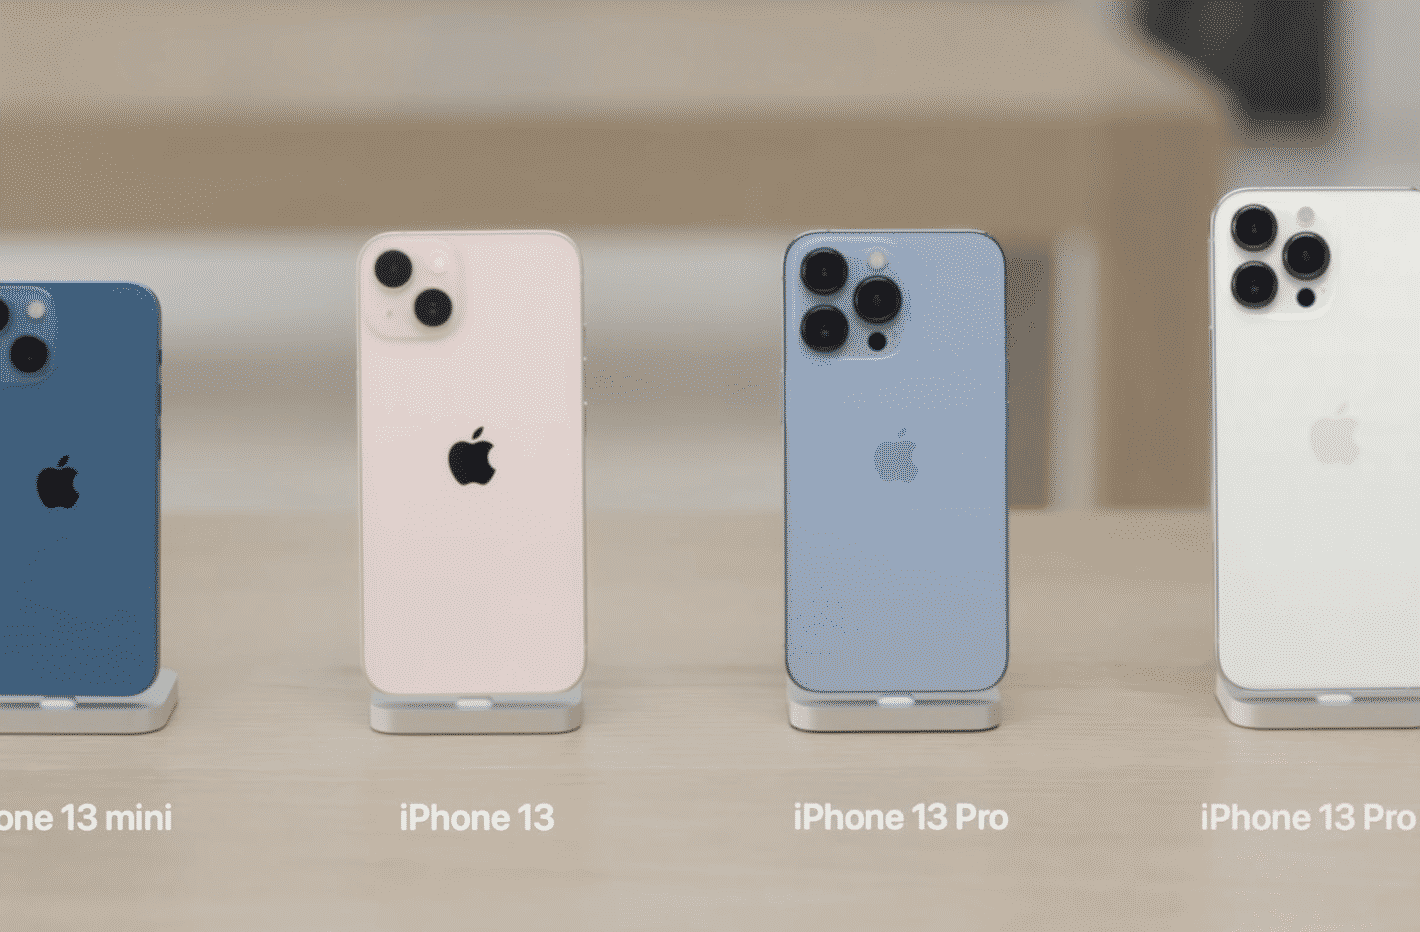 iPhone 13 Pro and iPhone 13 online guided tour goes live